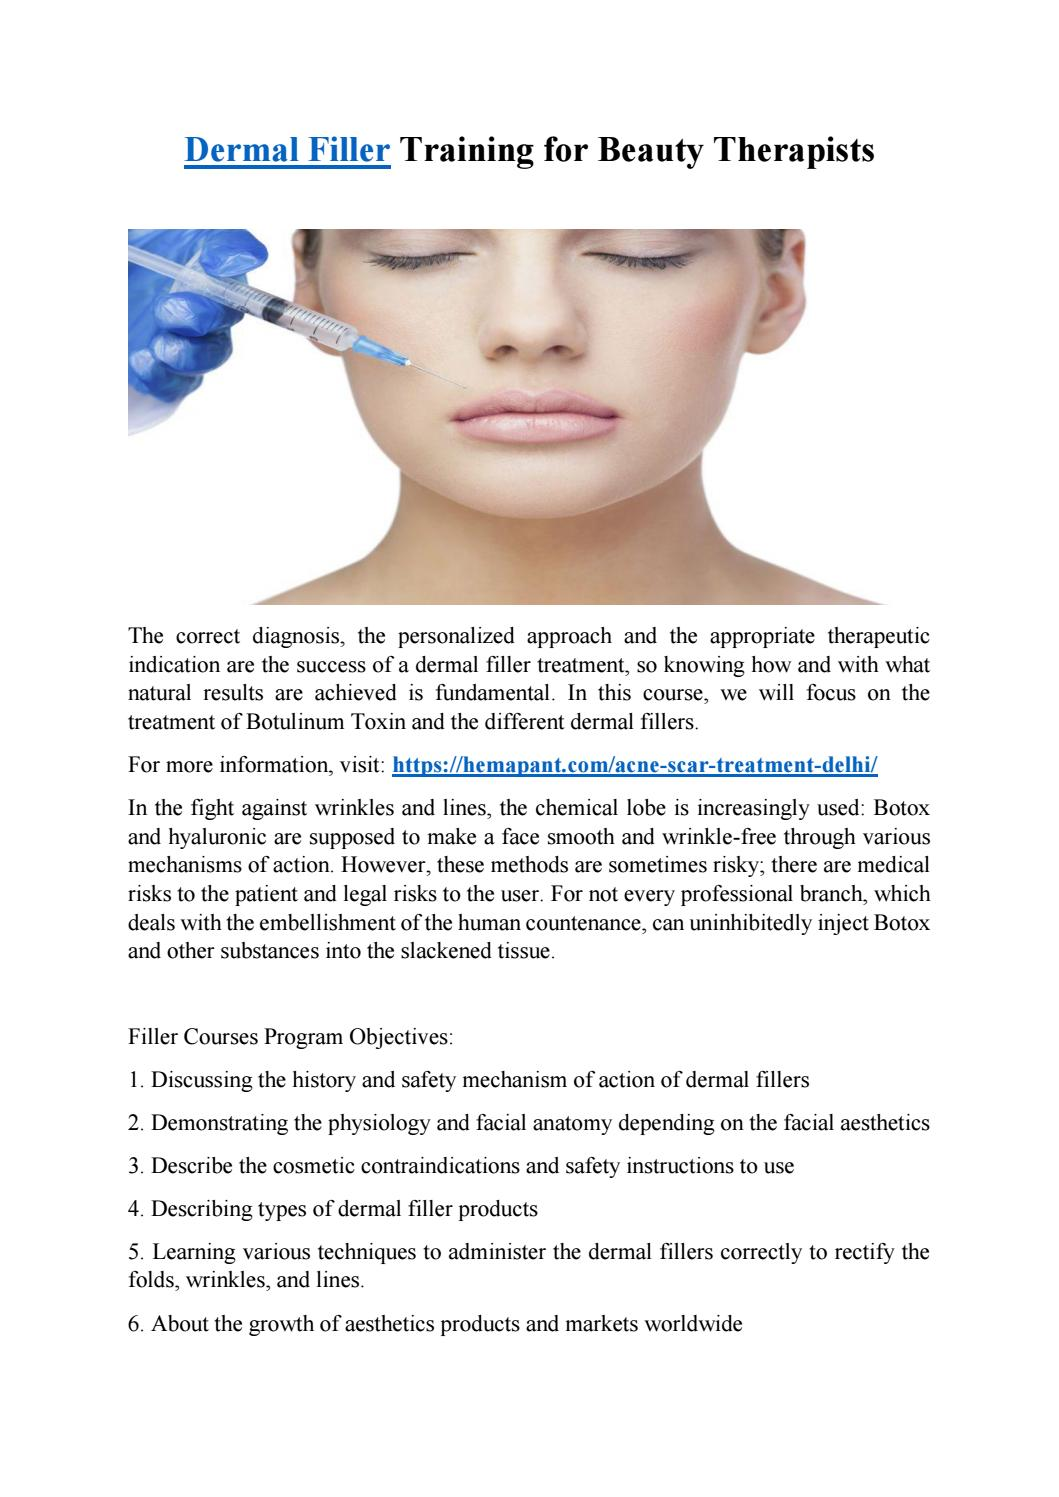 Dermal Filler Training For Beauty Therapists by Rohan Singh - issuu